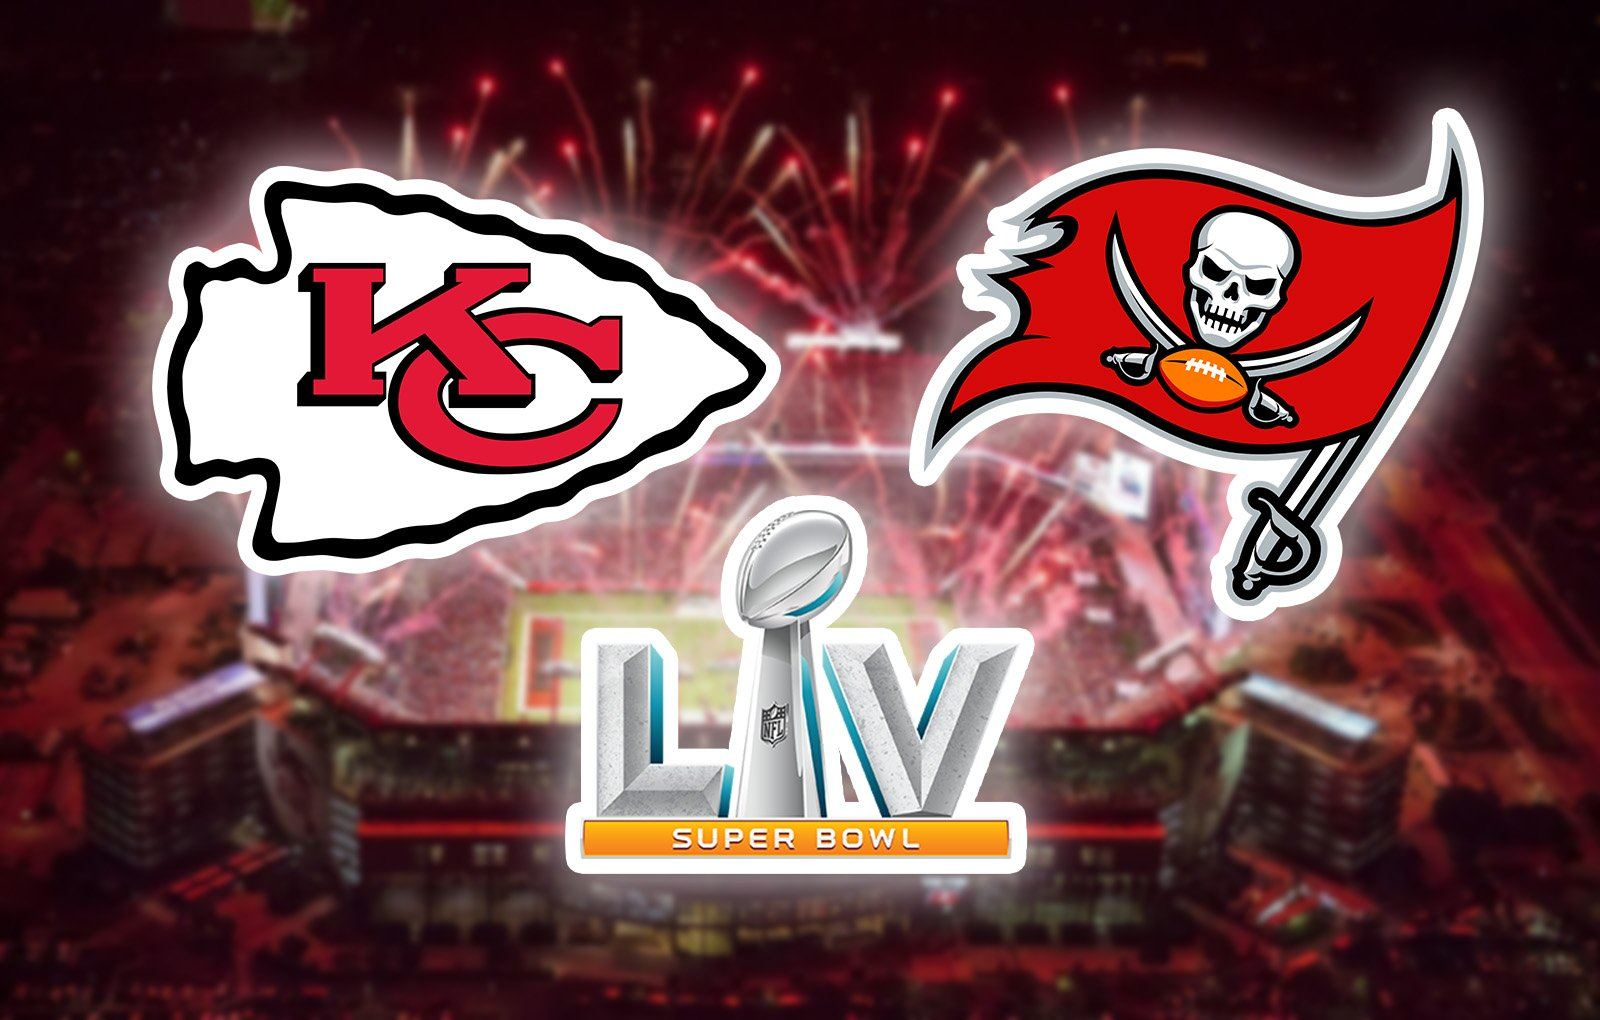 Super Bowl LV Contest Chiefs vs. Buccaneers